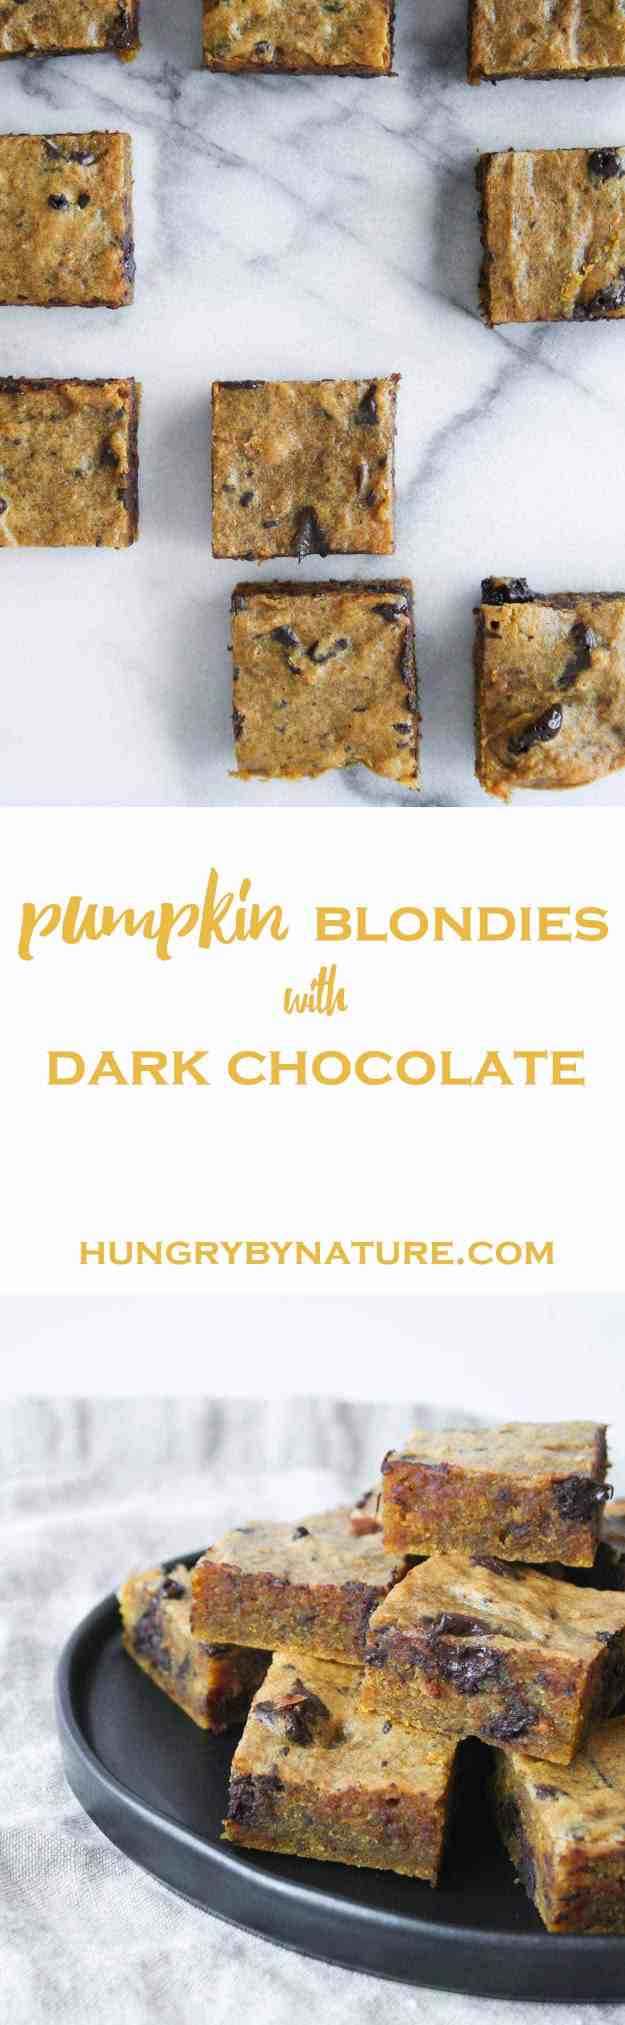 Pumpkin Blondies with Dark Chocolate Chunks! | hungrybynature.com